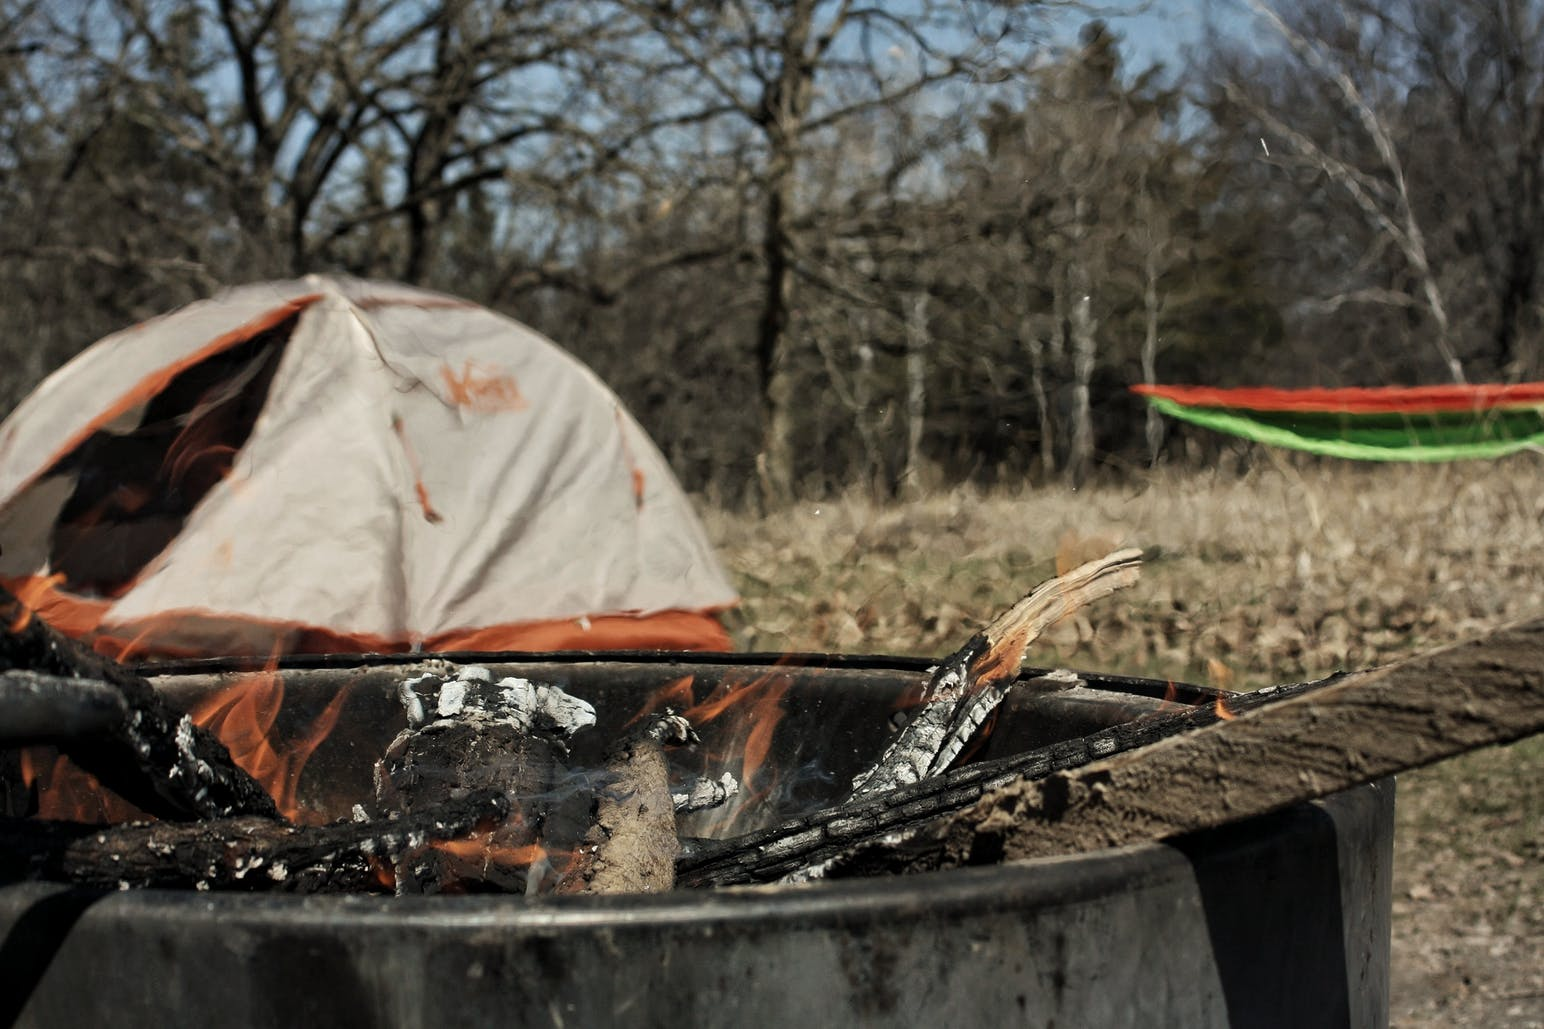 campfire ring and tent at campsite